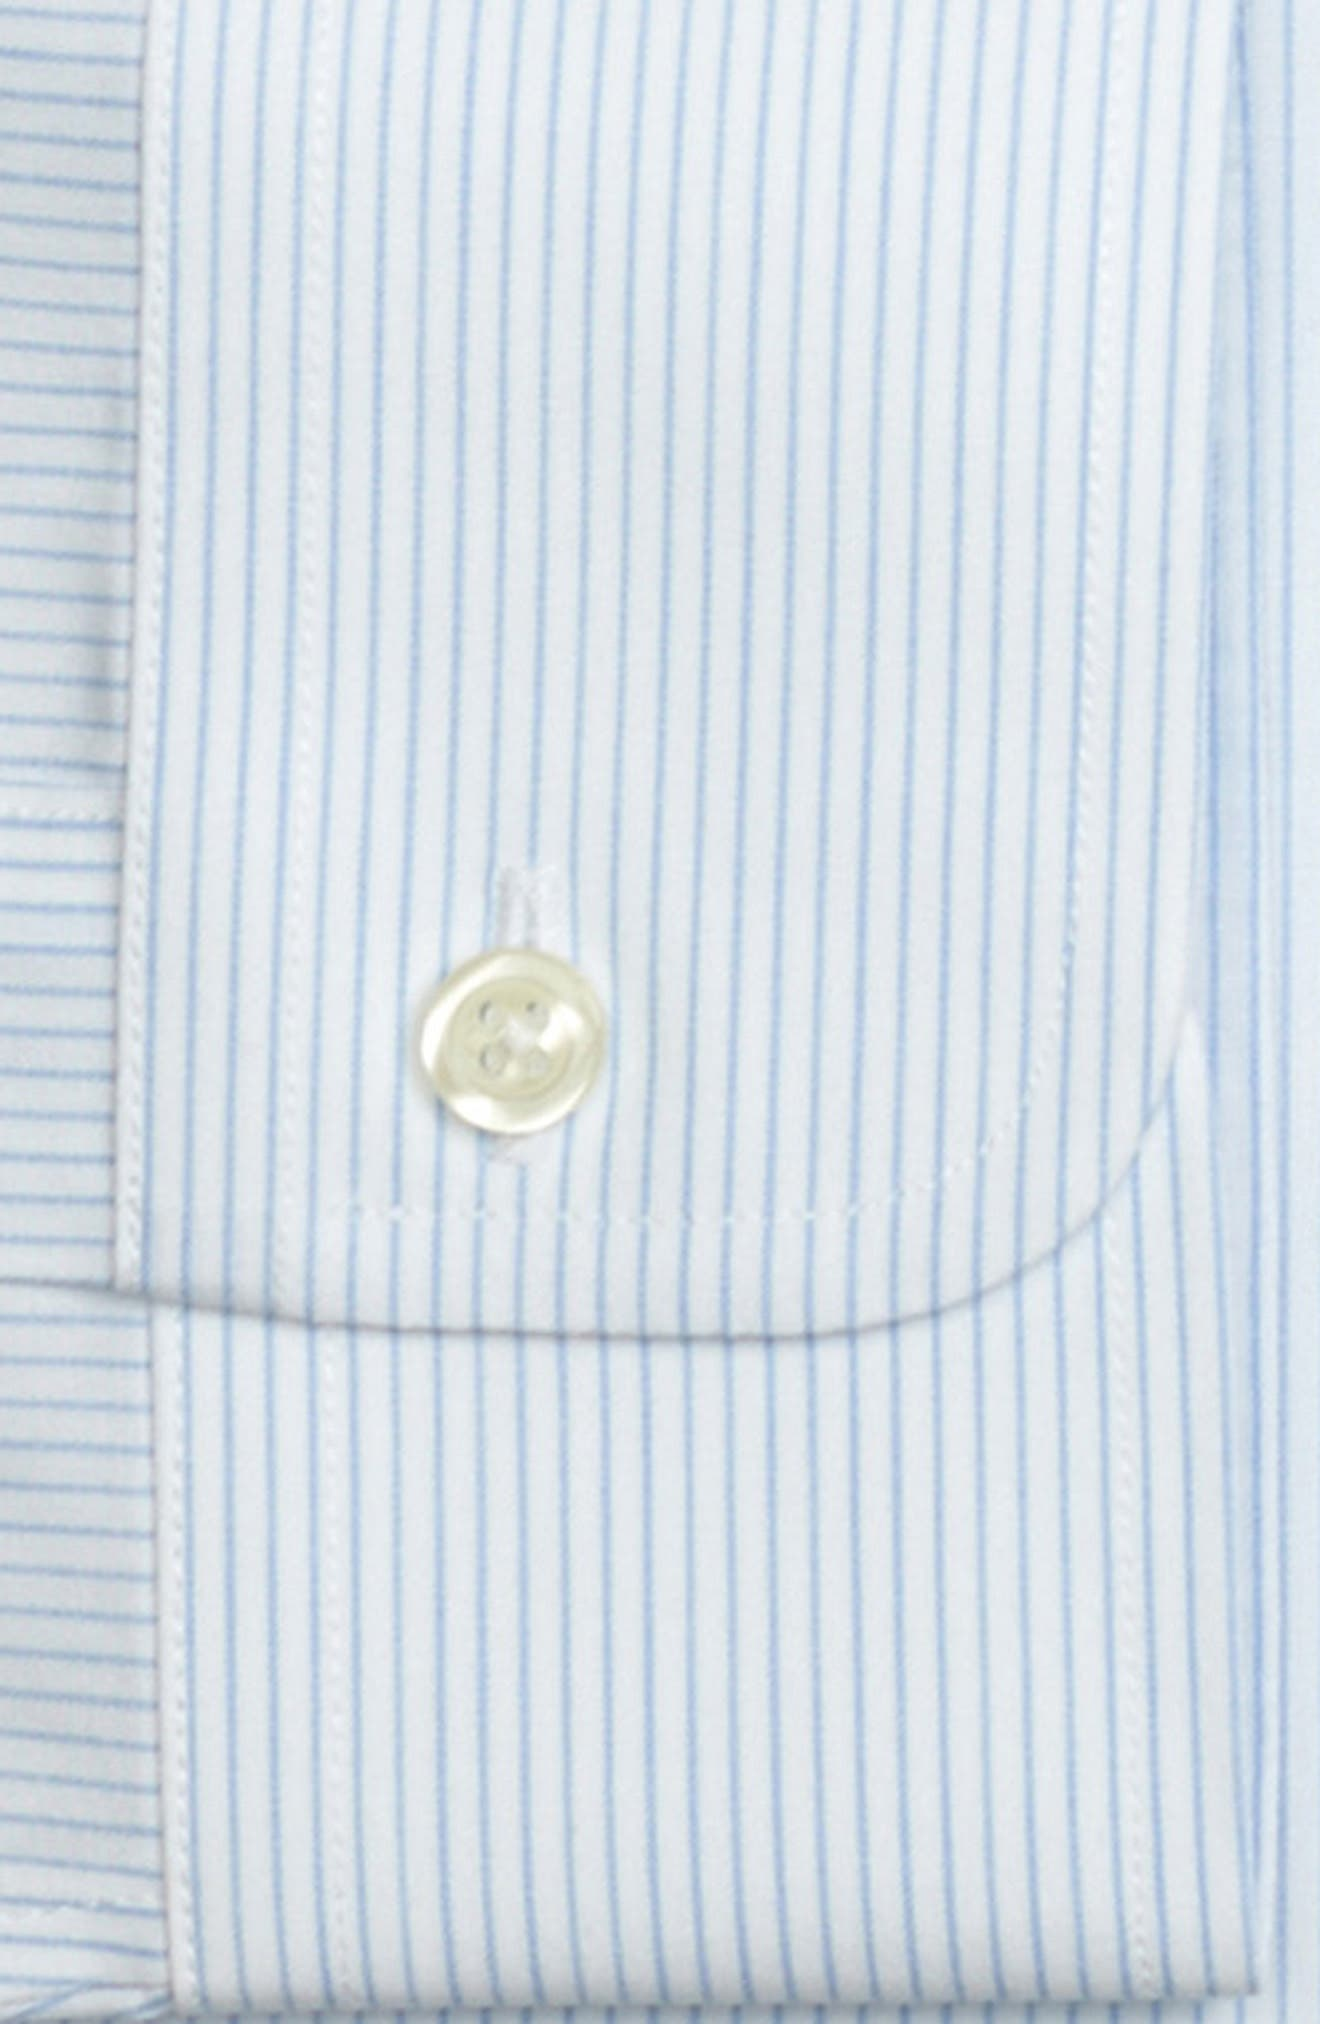 Regular Fit Stripe Dress Shirt,                             Alternate thumbnail 2, color,                             LIGHT/ PASTEL BLUE